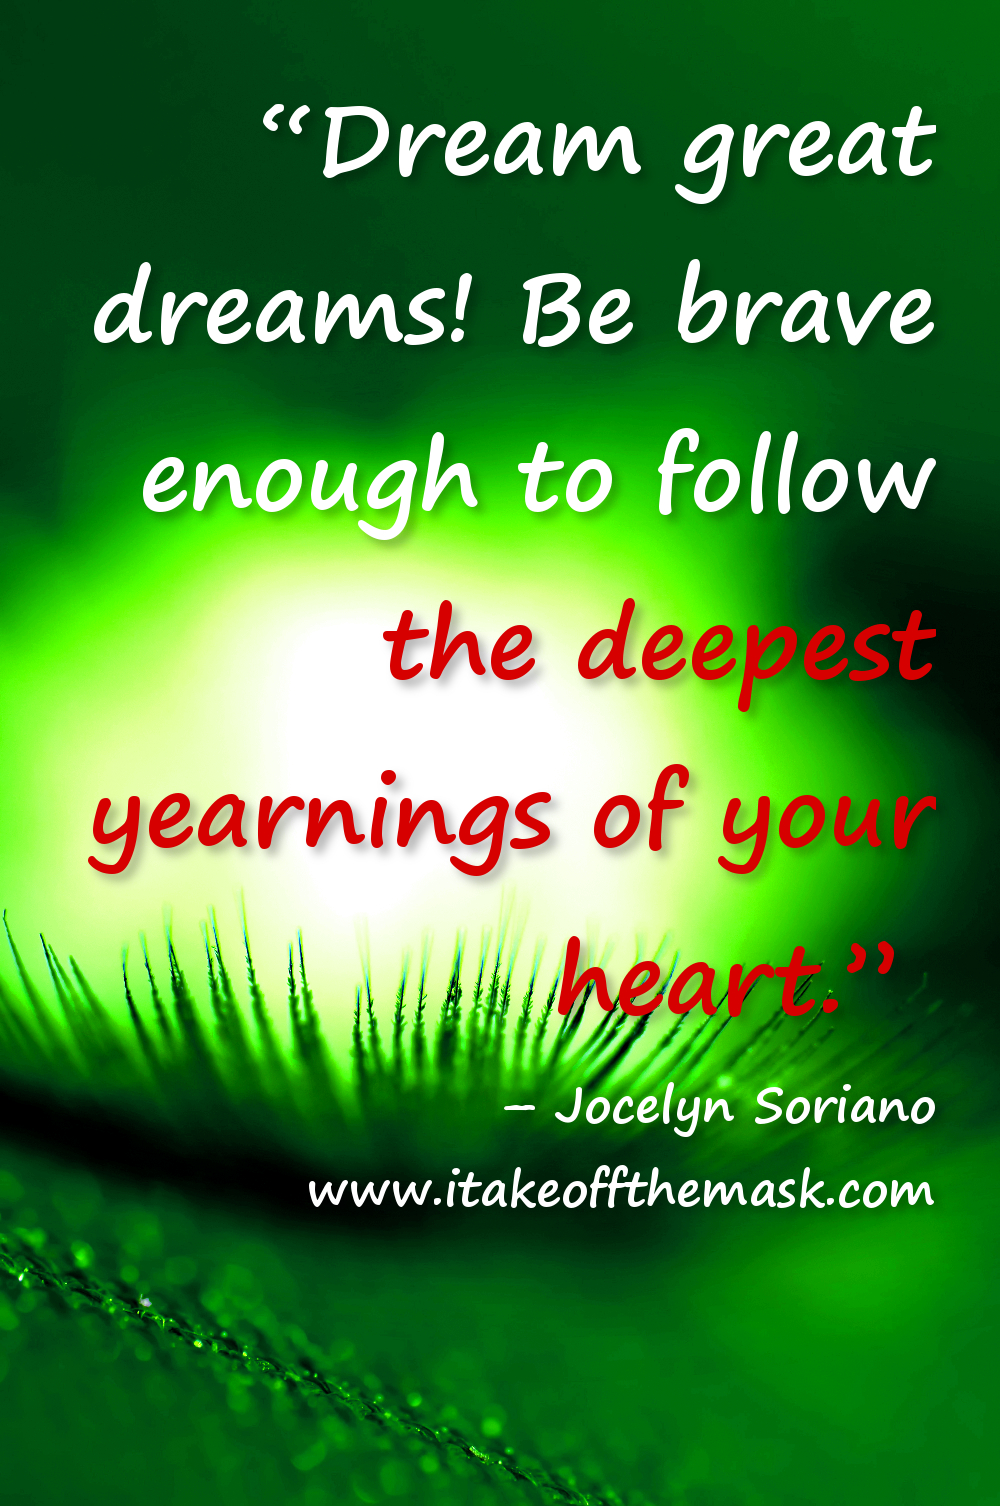 Inspirational Quotes on Dreams